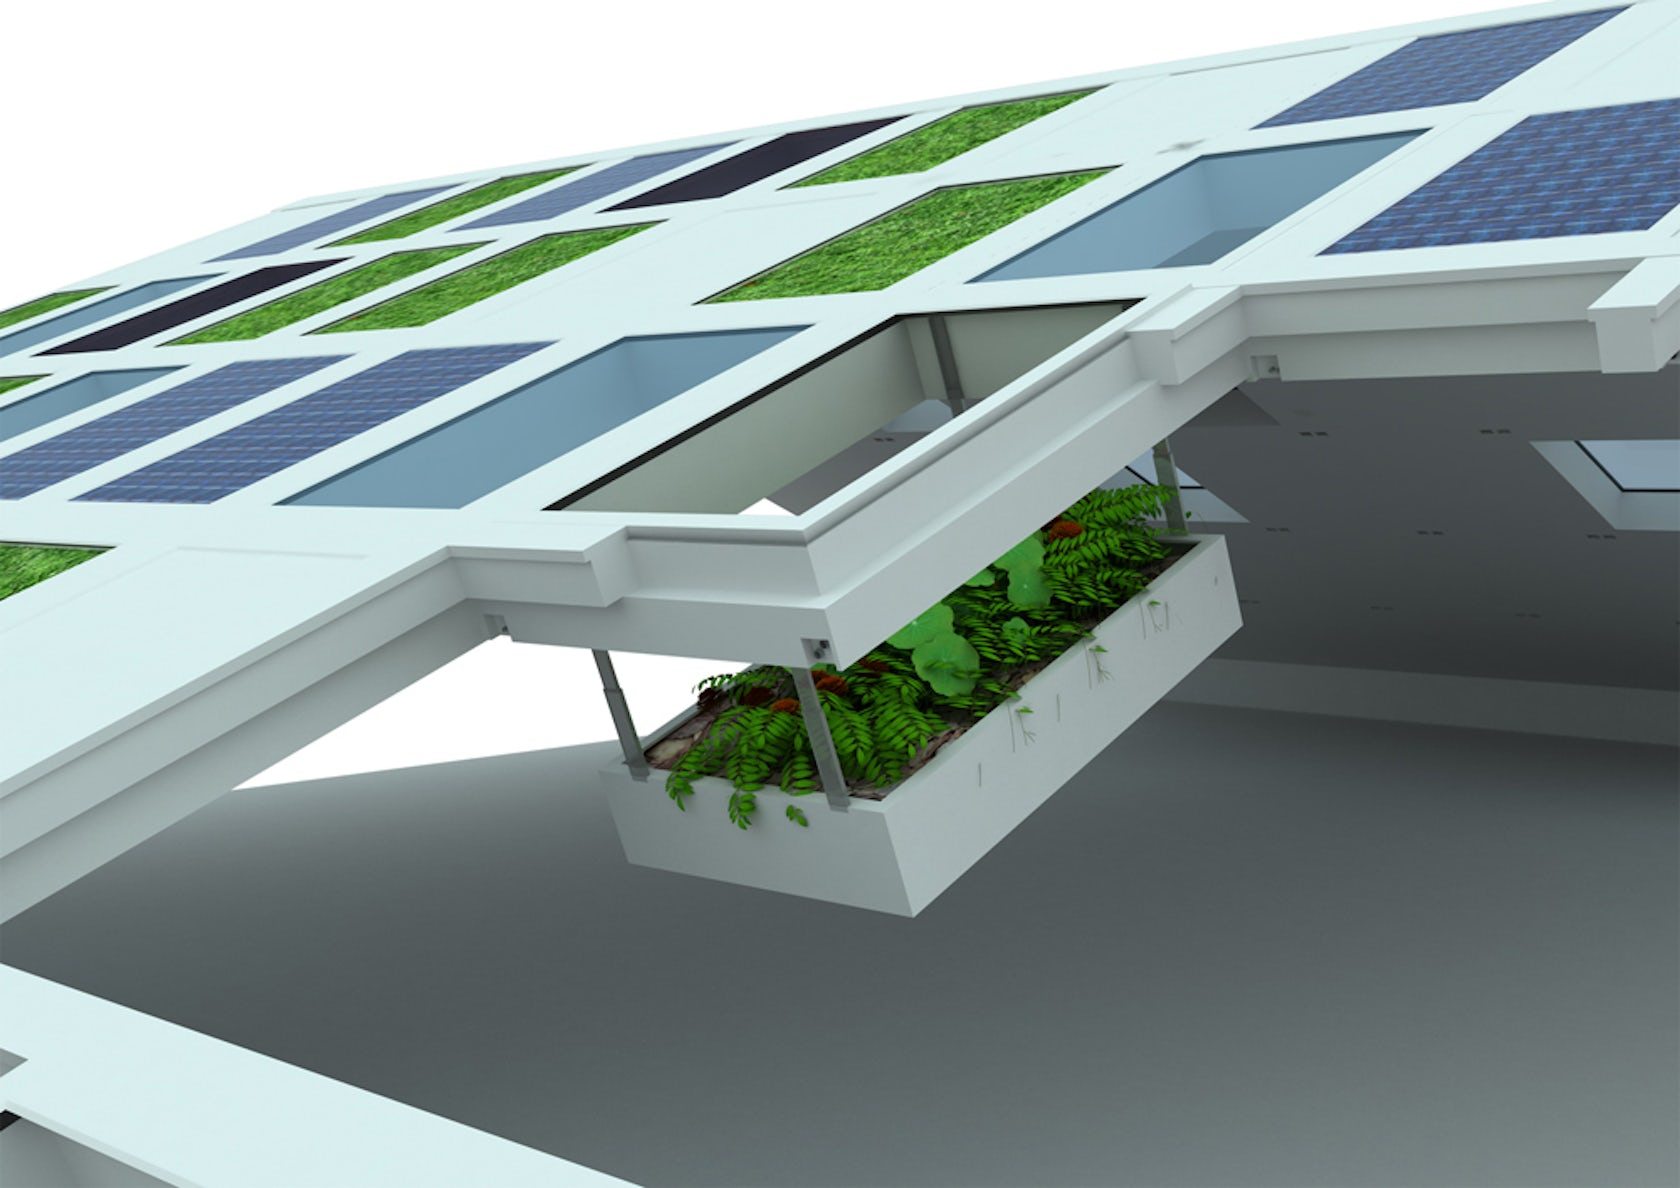 S5 modular roof system ytong roof and sustainability for Prefabricated roofing systems